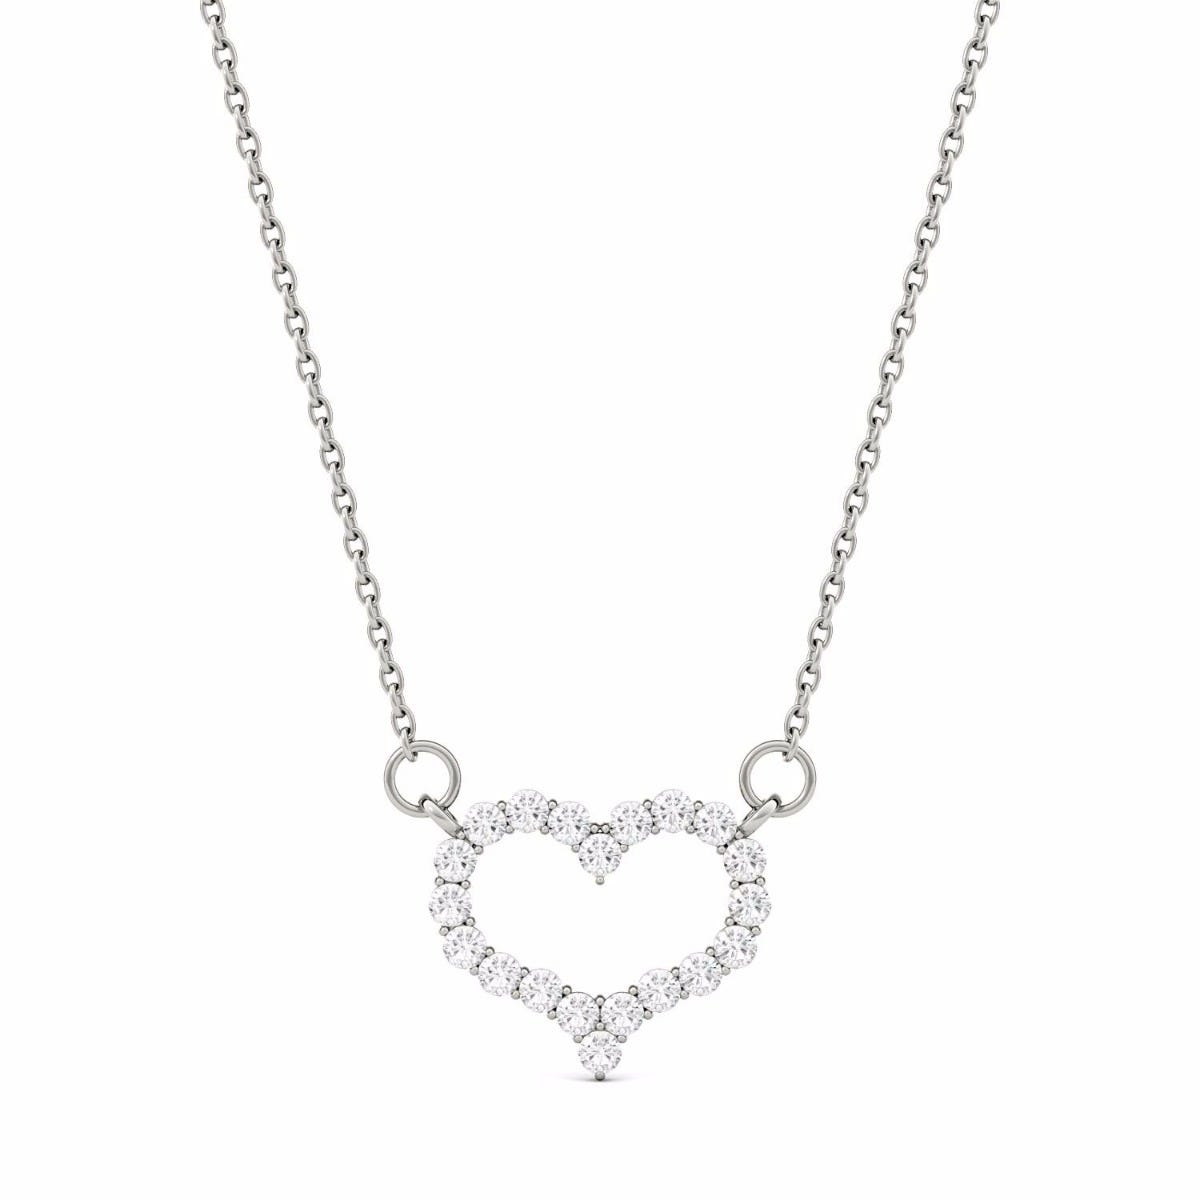 Give mom the gift of moissanite for Mother's Day